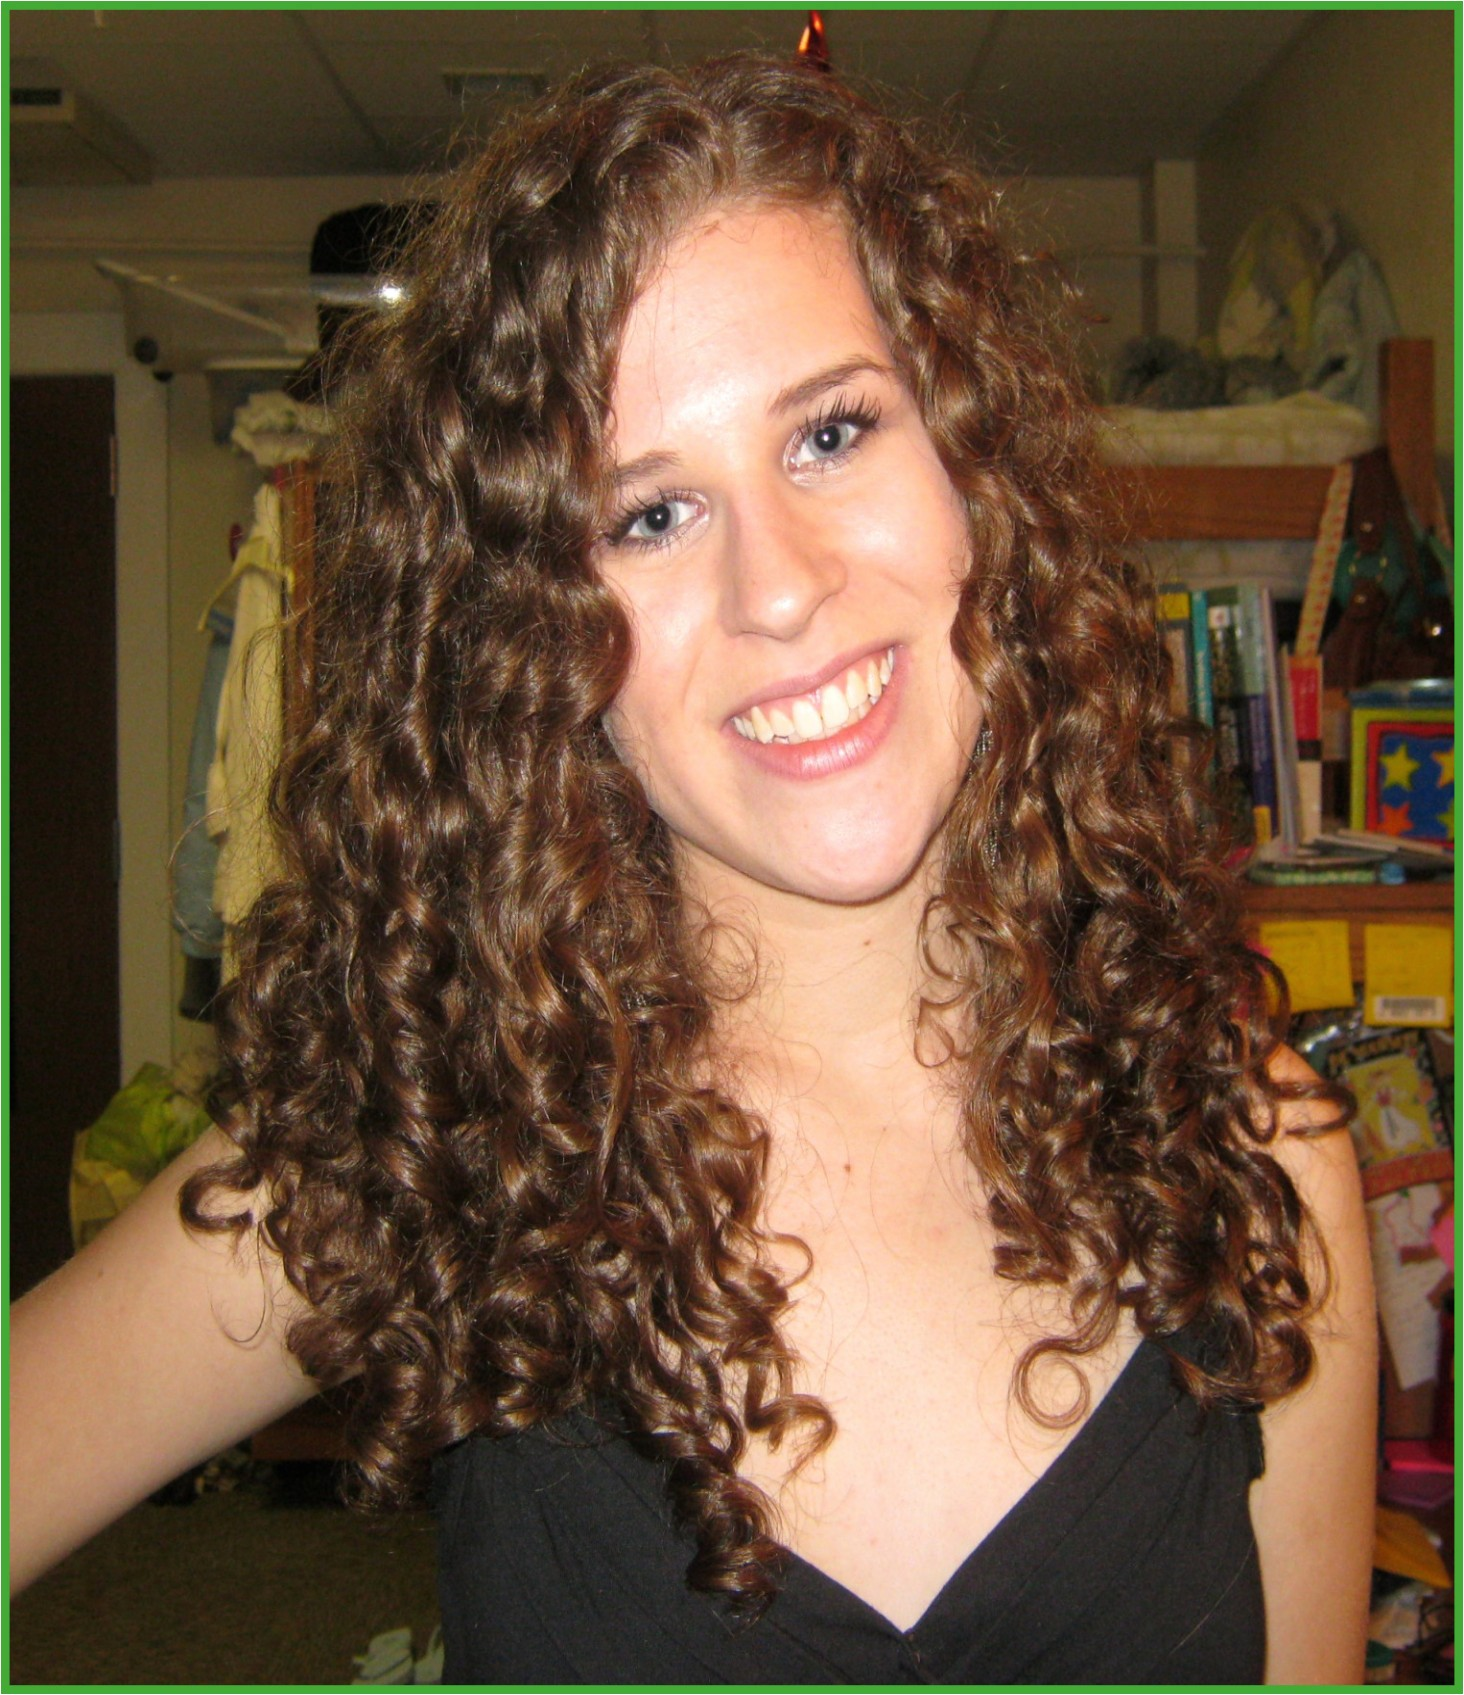 Pics Of Cool Hairstyles for Girls Cute Hairstyles for Girls with Medium Hair Exciting Very Curly